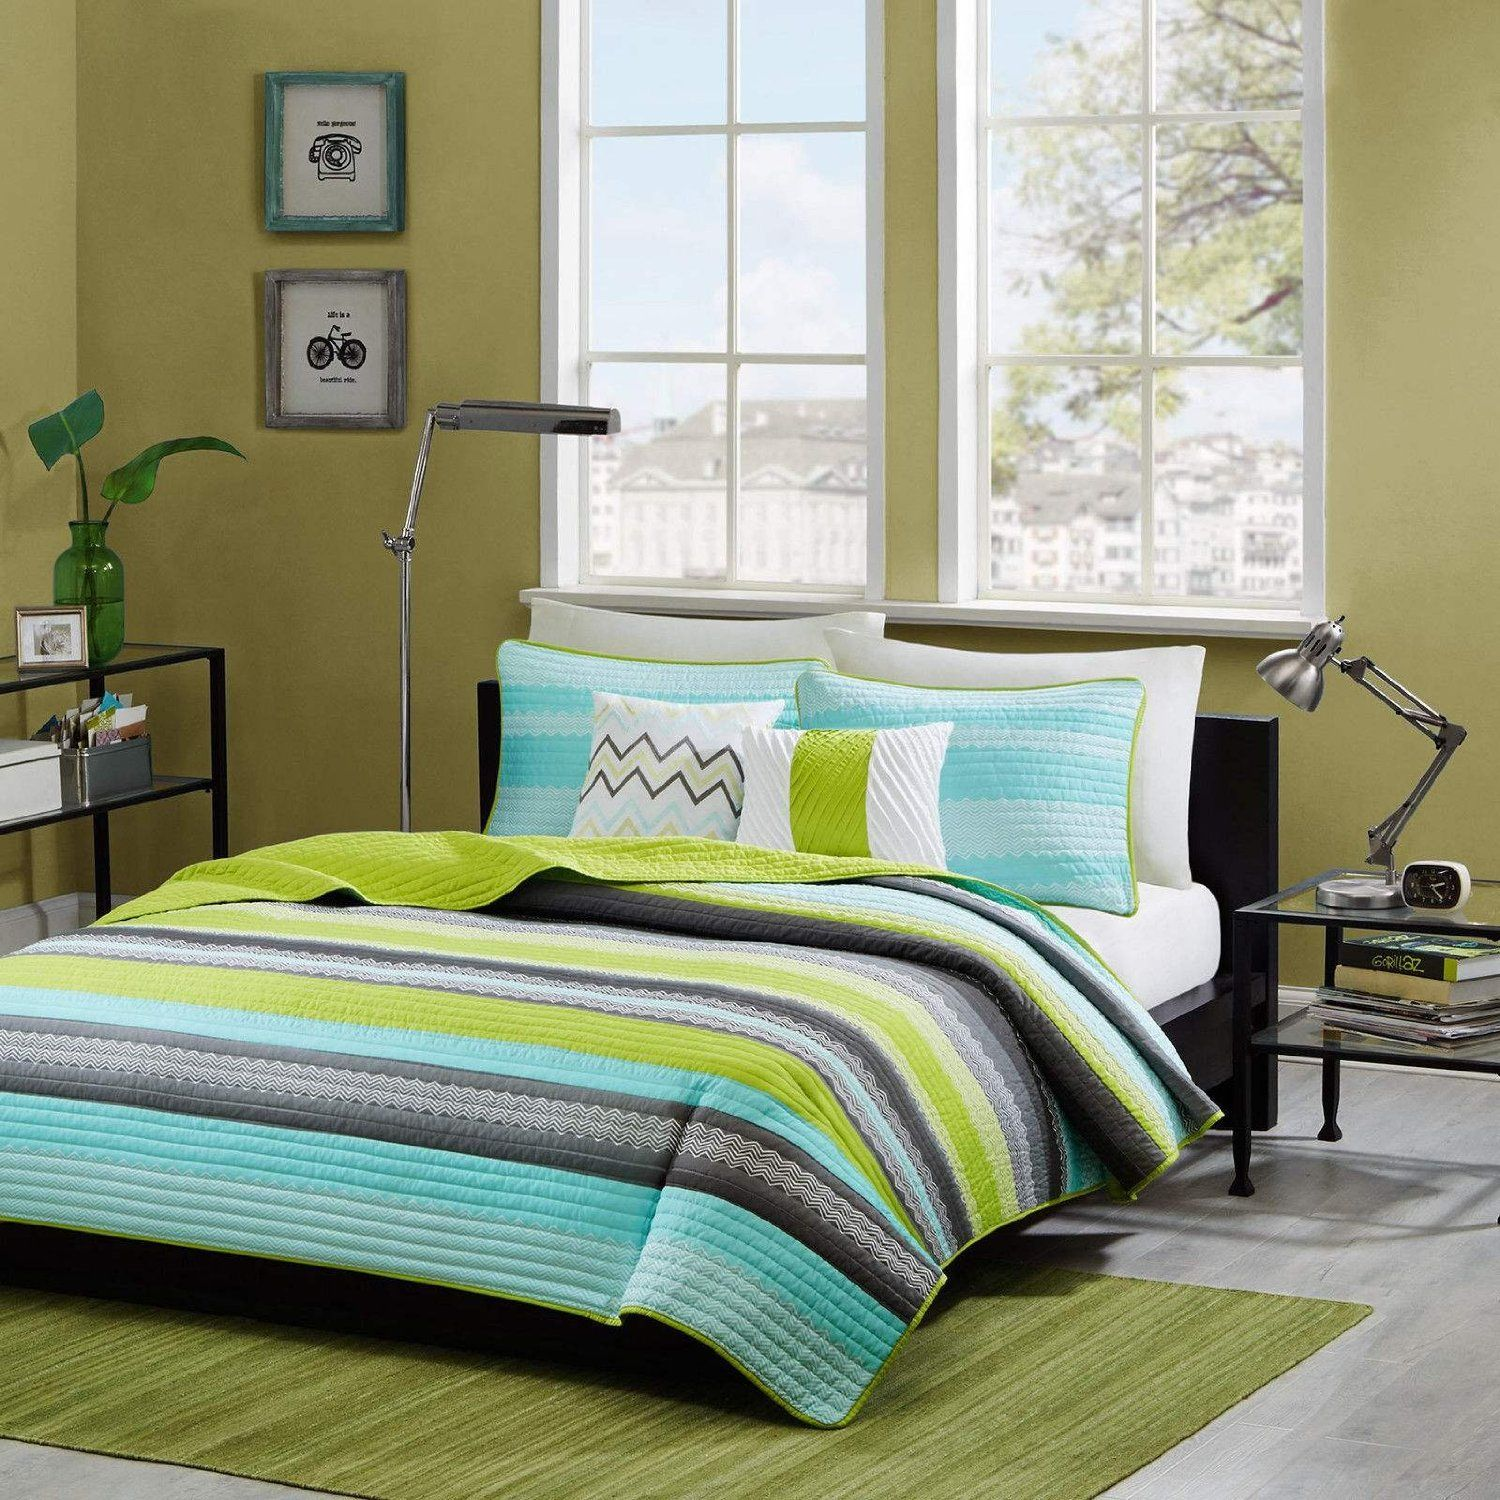 Blue And Green Bedding Sets Green bedding, Coverlet